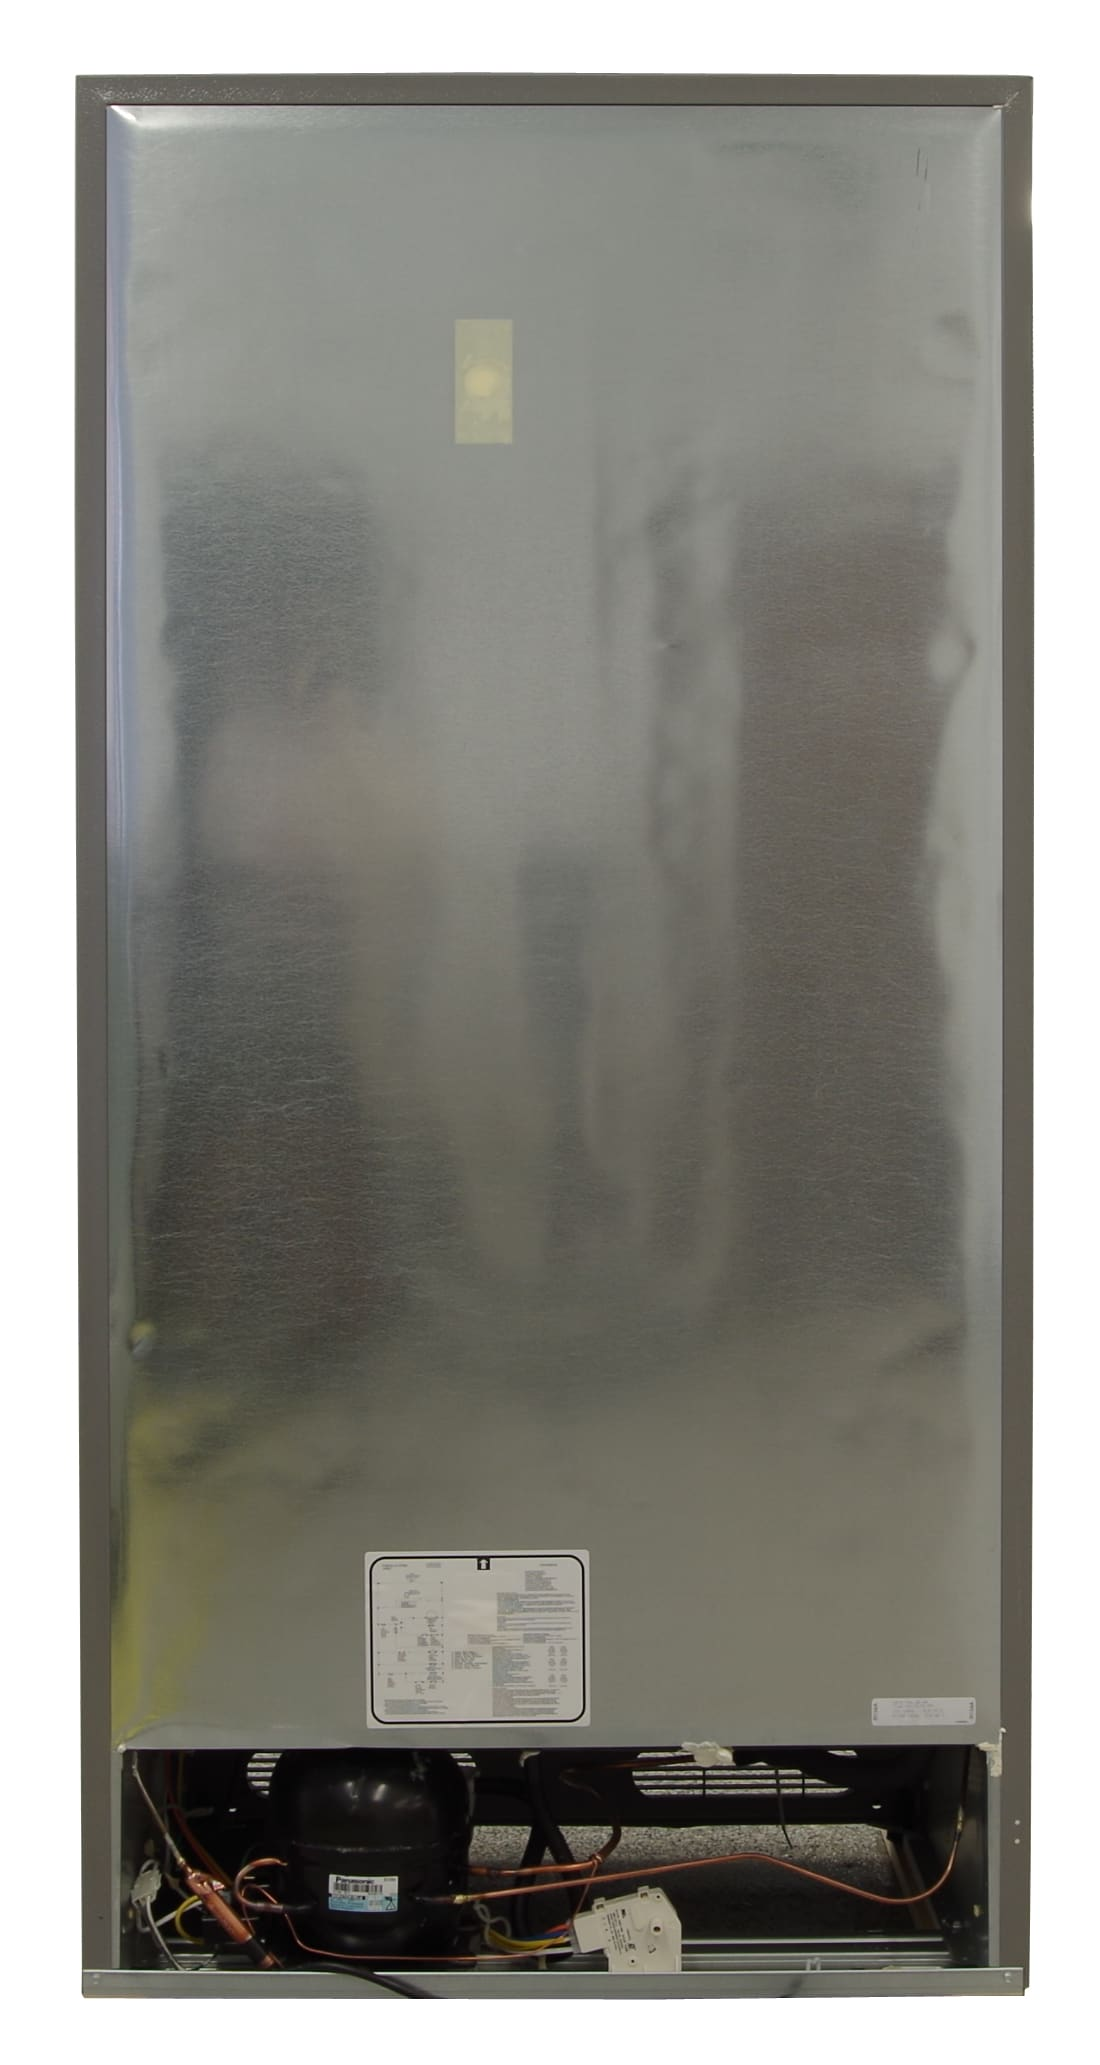 The Frigidaire FFU17F2PT has a typical metal back which—like most uprights—leaves the lower section exposed.